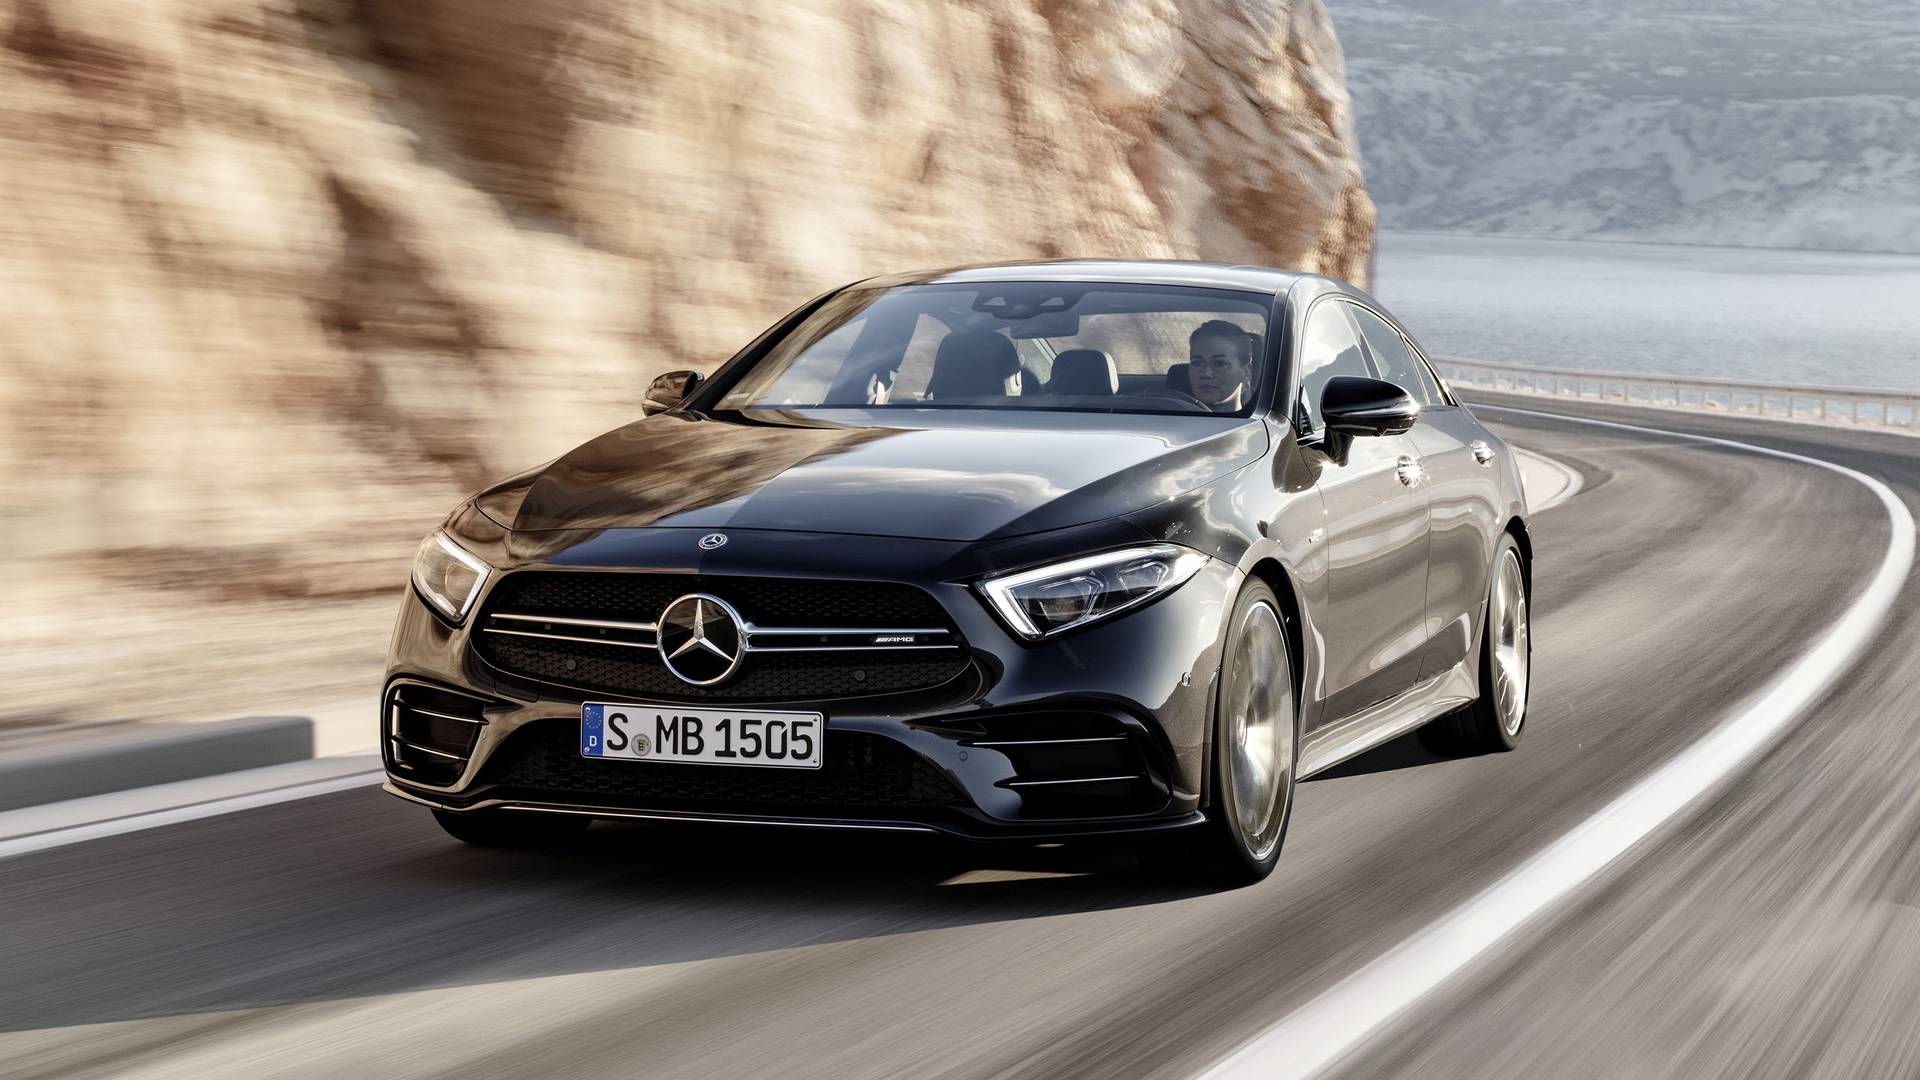 https://icdn-1.motor1.com/images/mgl/ovx12/s1/2019-mercedes-amg-cls53.jpg